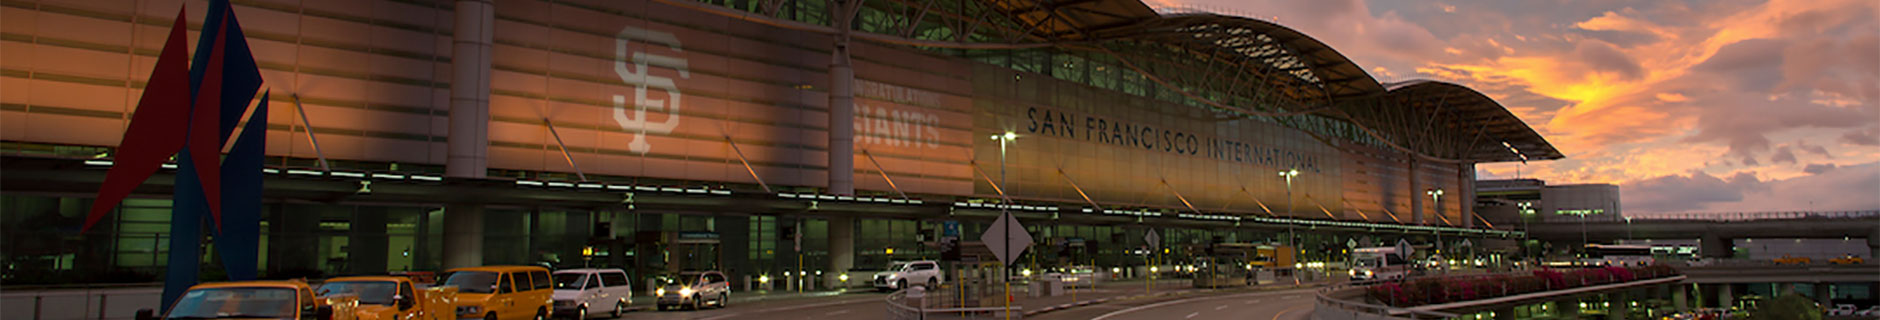 SFO Airport at sunset